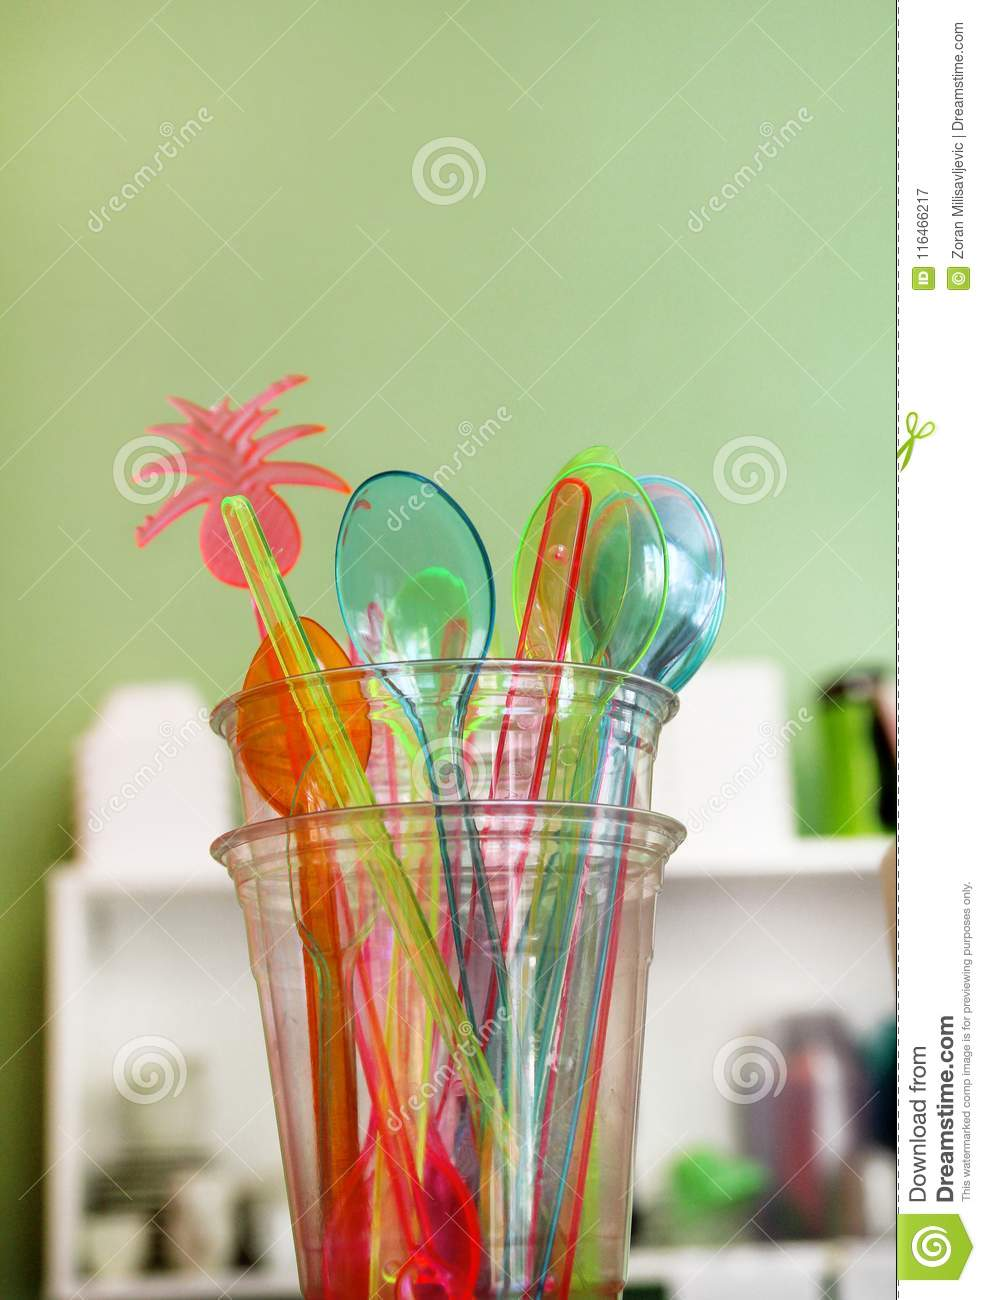 Colorful Drinking Straws In Glass, Plastic Spoon And Plastic